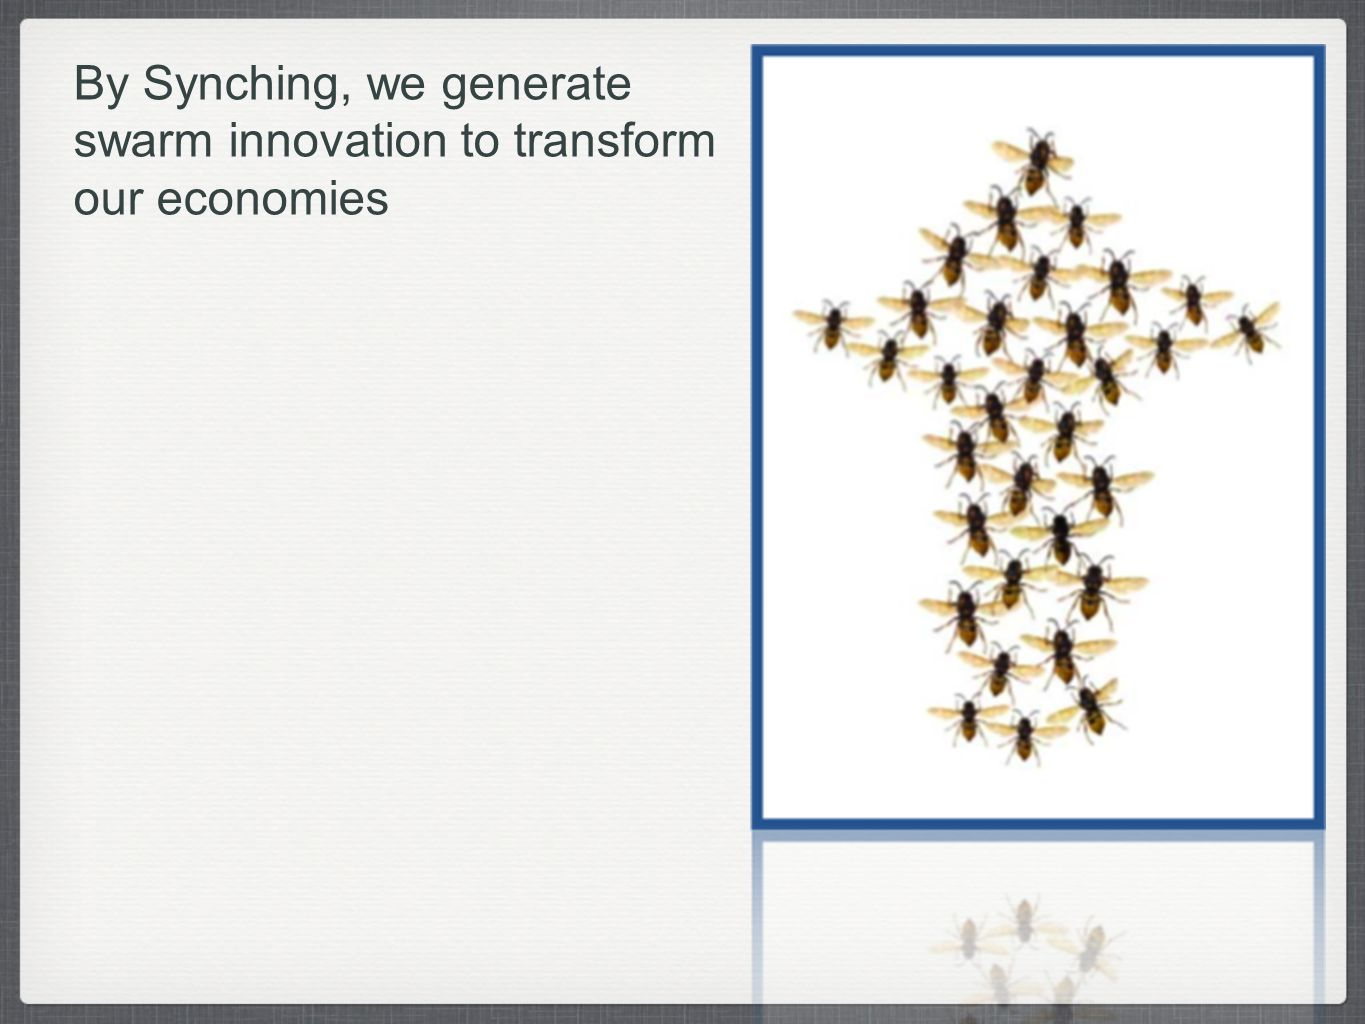 By Synching, we generate swarm innovation to transform our economies